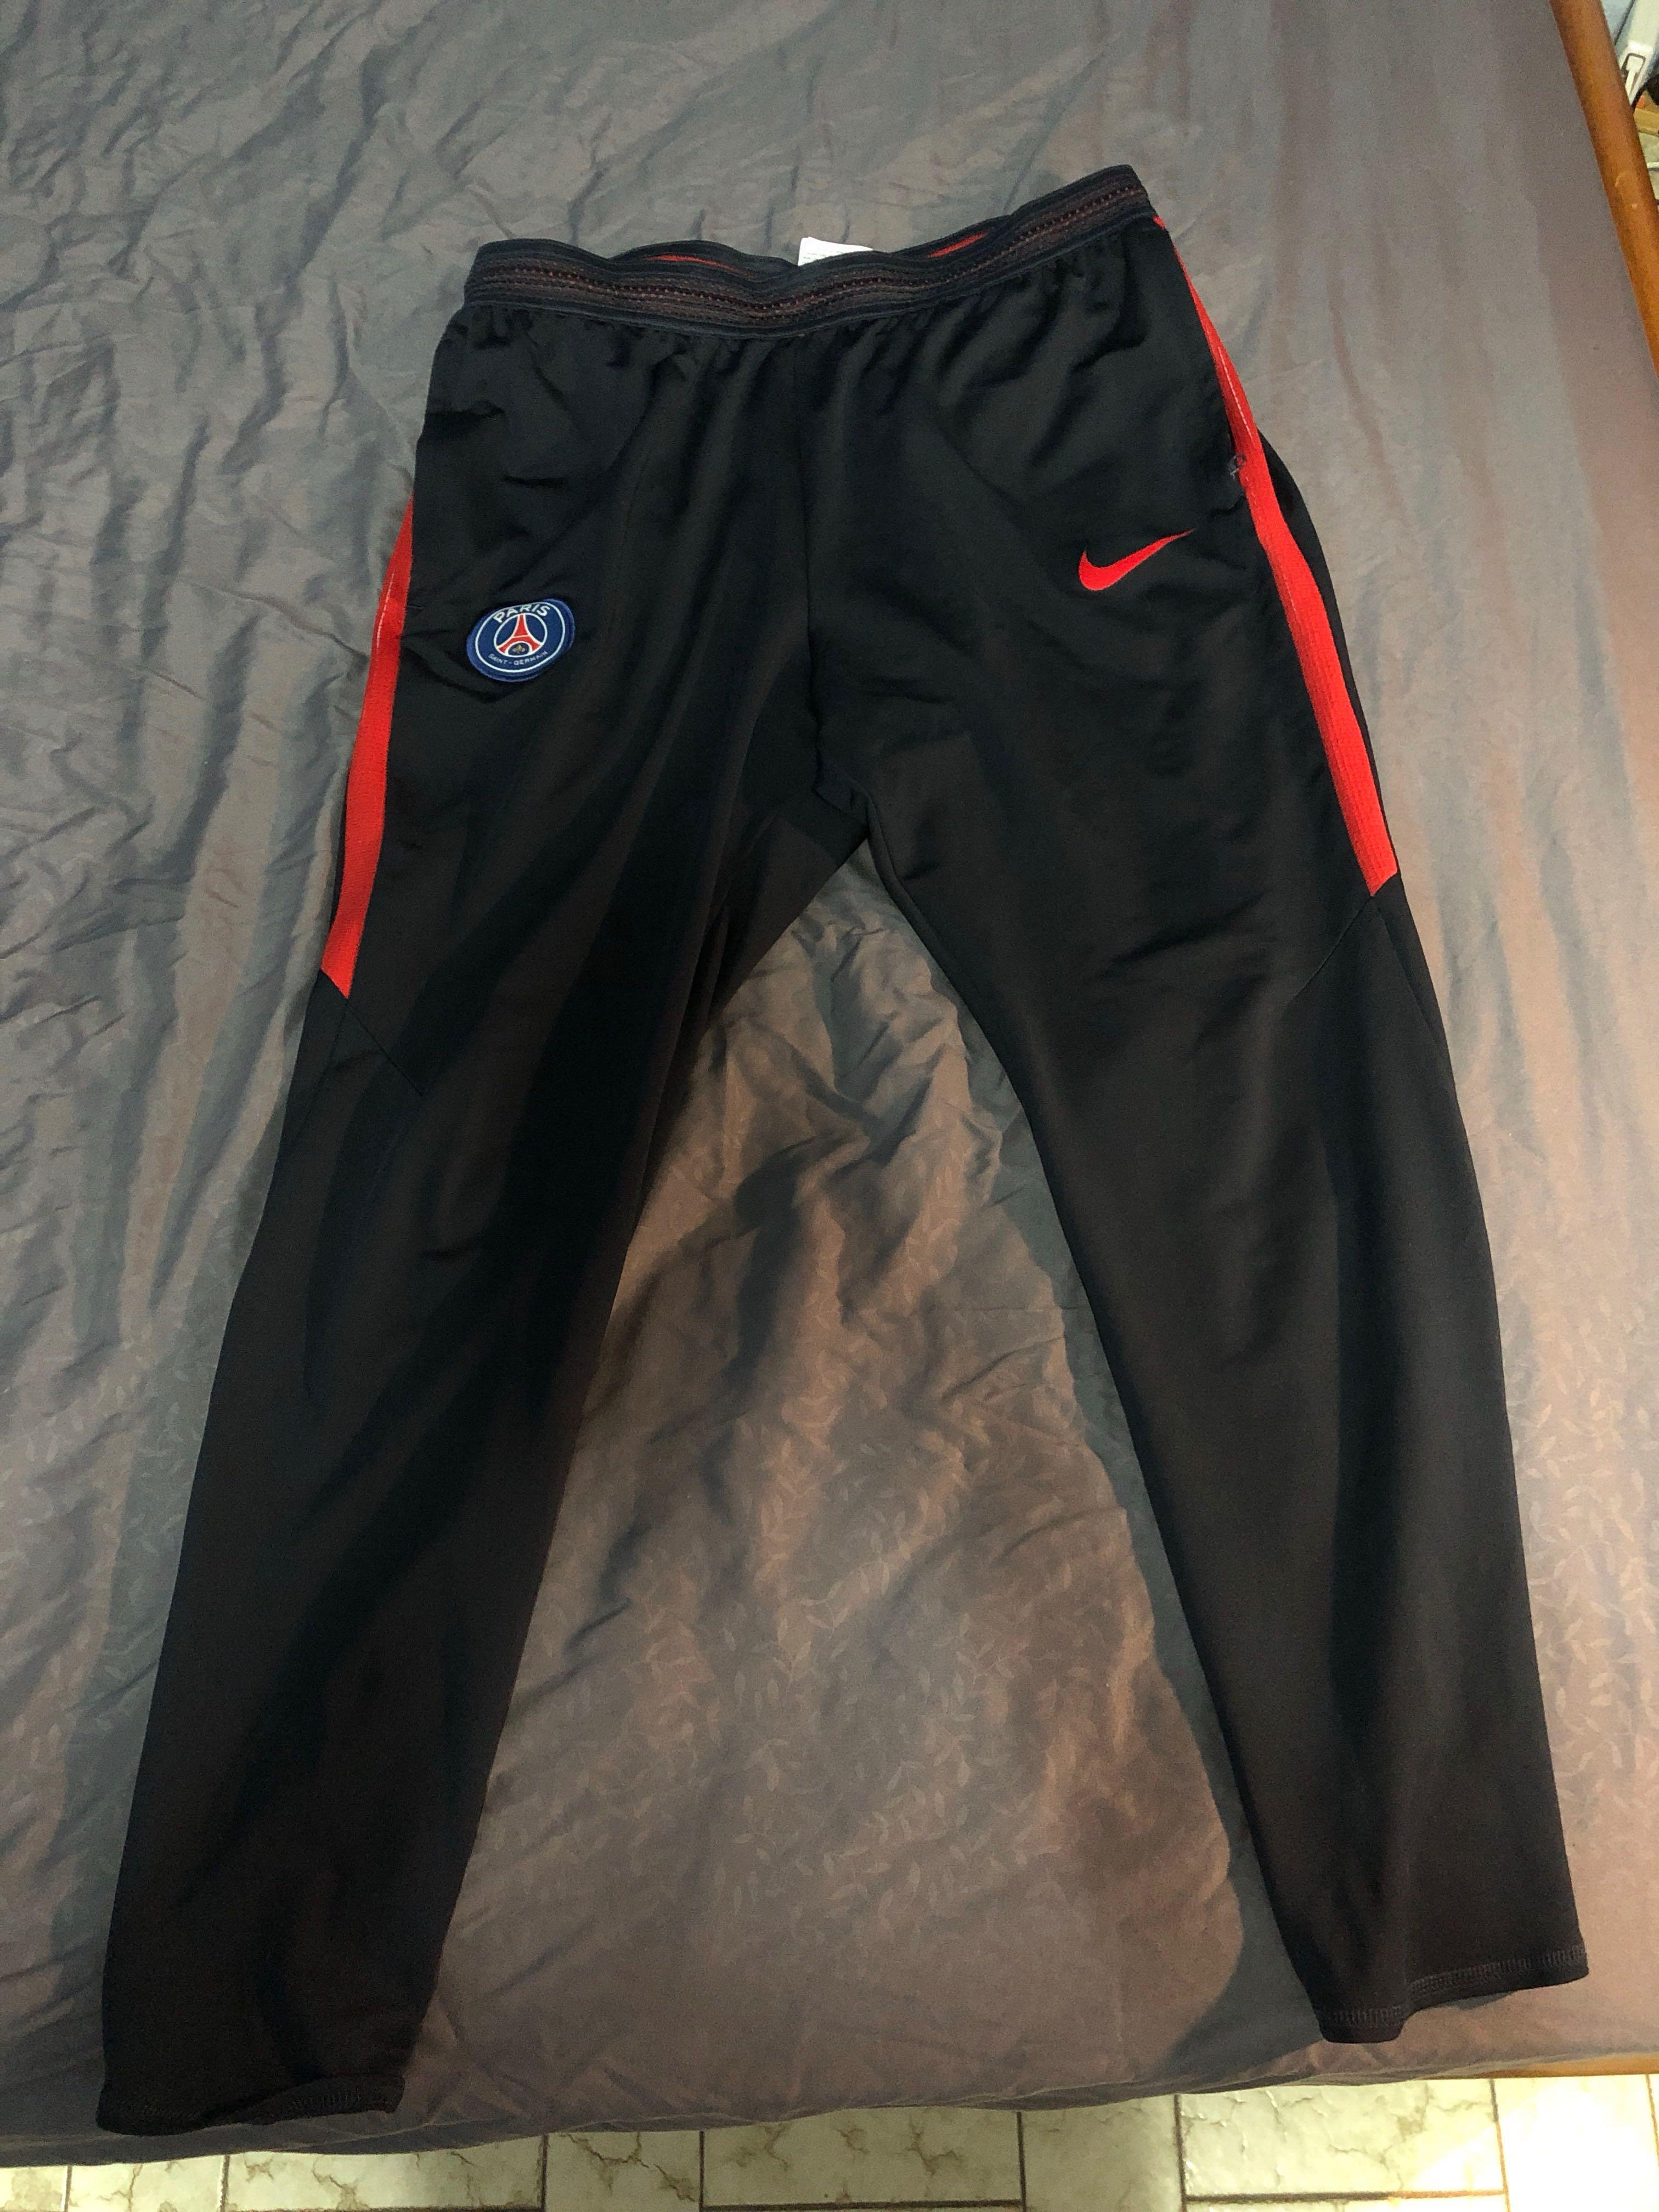 new product 1bb54 0d067 PSG Nike Soccer Trackpants, Men's Fashion, Clothes, Bottoms ...